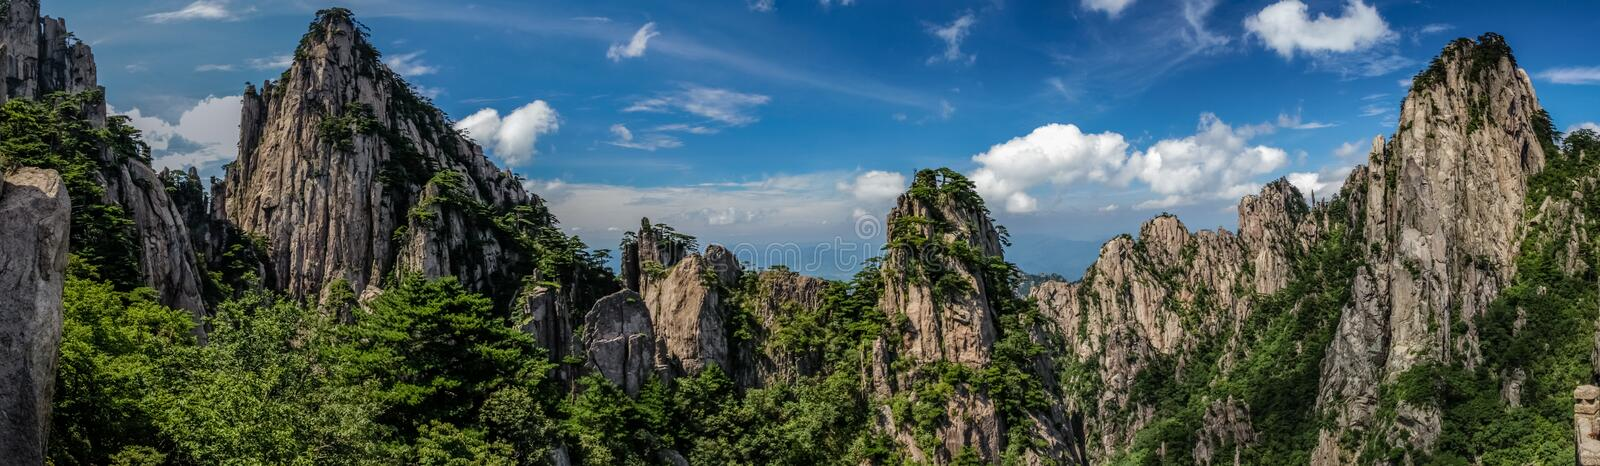 Panorama of rocky peaks and old pine trees cover the mountains under a bright blue sky with whispy clouds in Huangshan China stock photo